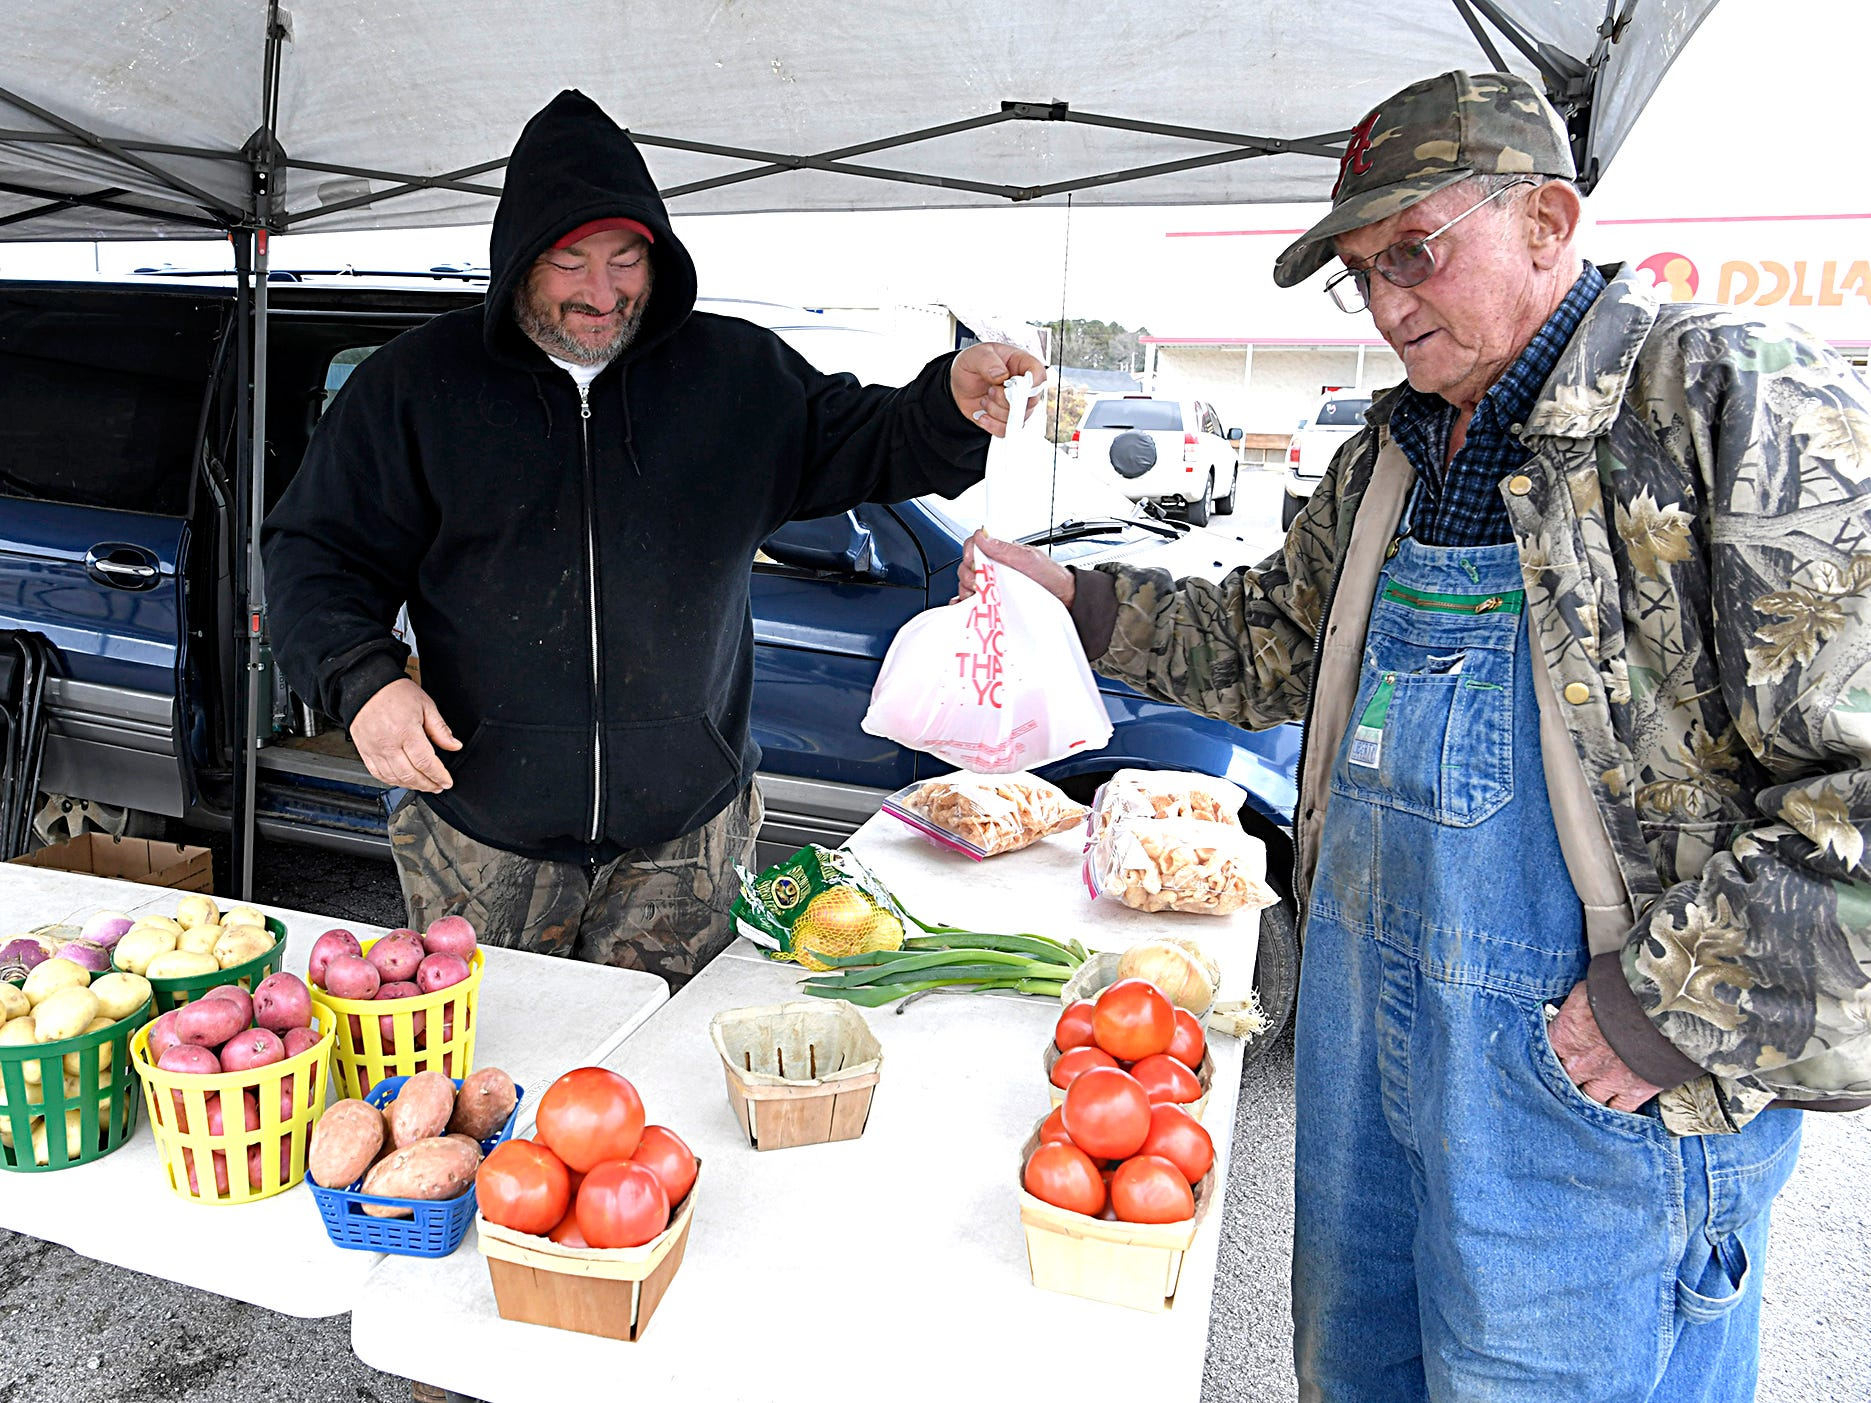 Kent Kisselburg sells vegetables to Lee Chambers at Kisselburg's stand in parking lot in Ducktown, Tennessee on Dec. 4, 2018.